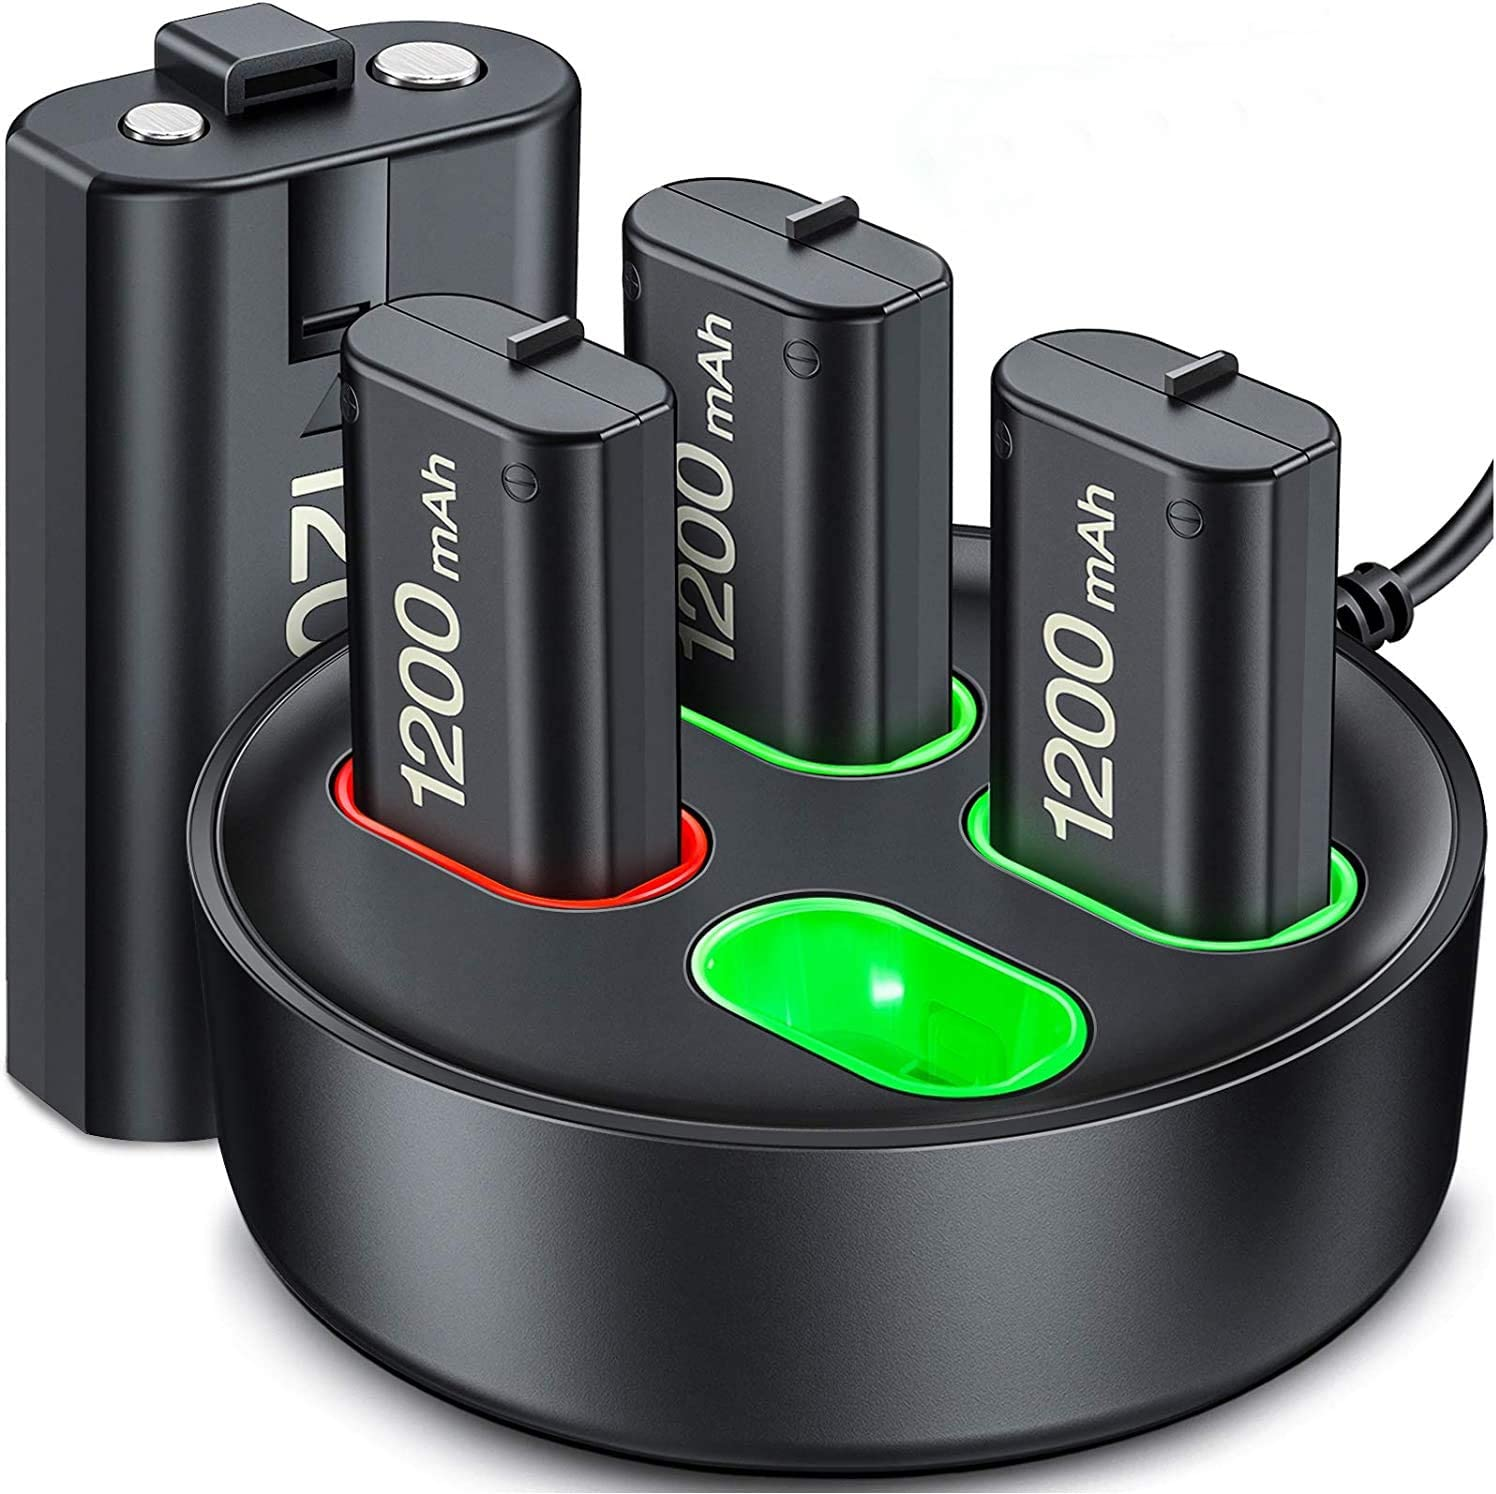 Best Xbox Controller Charger